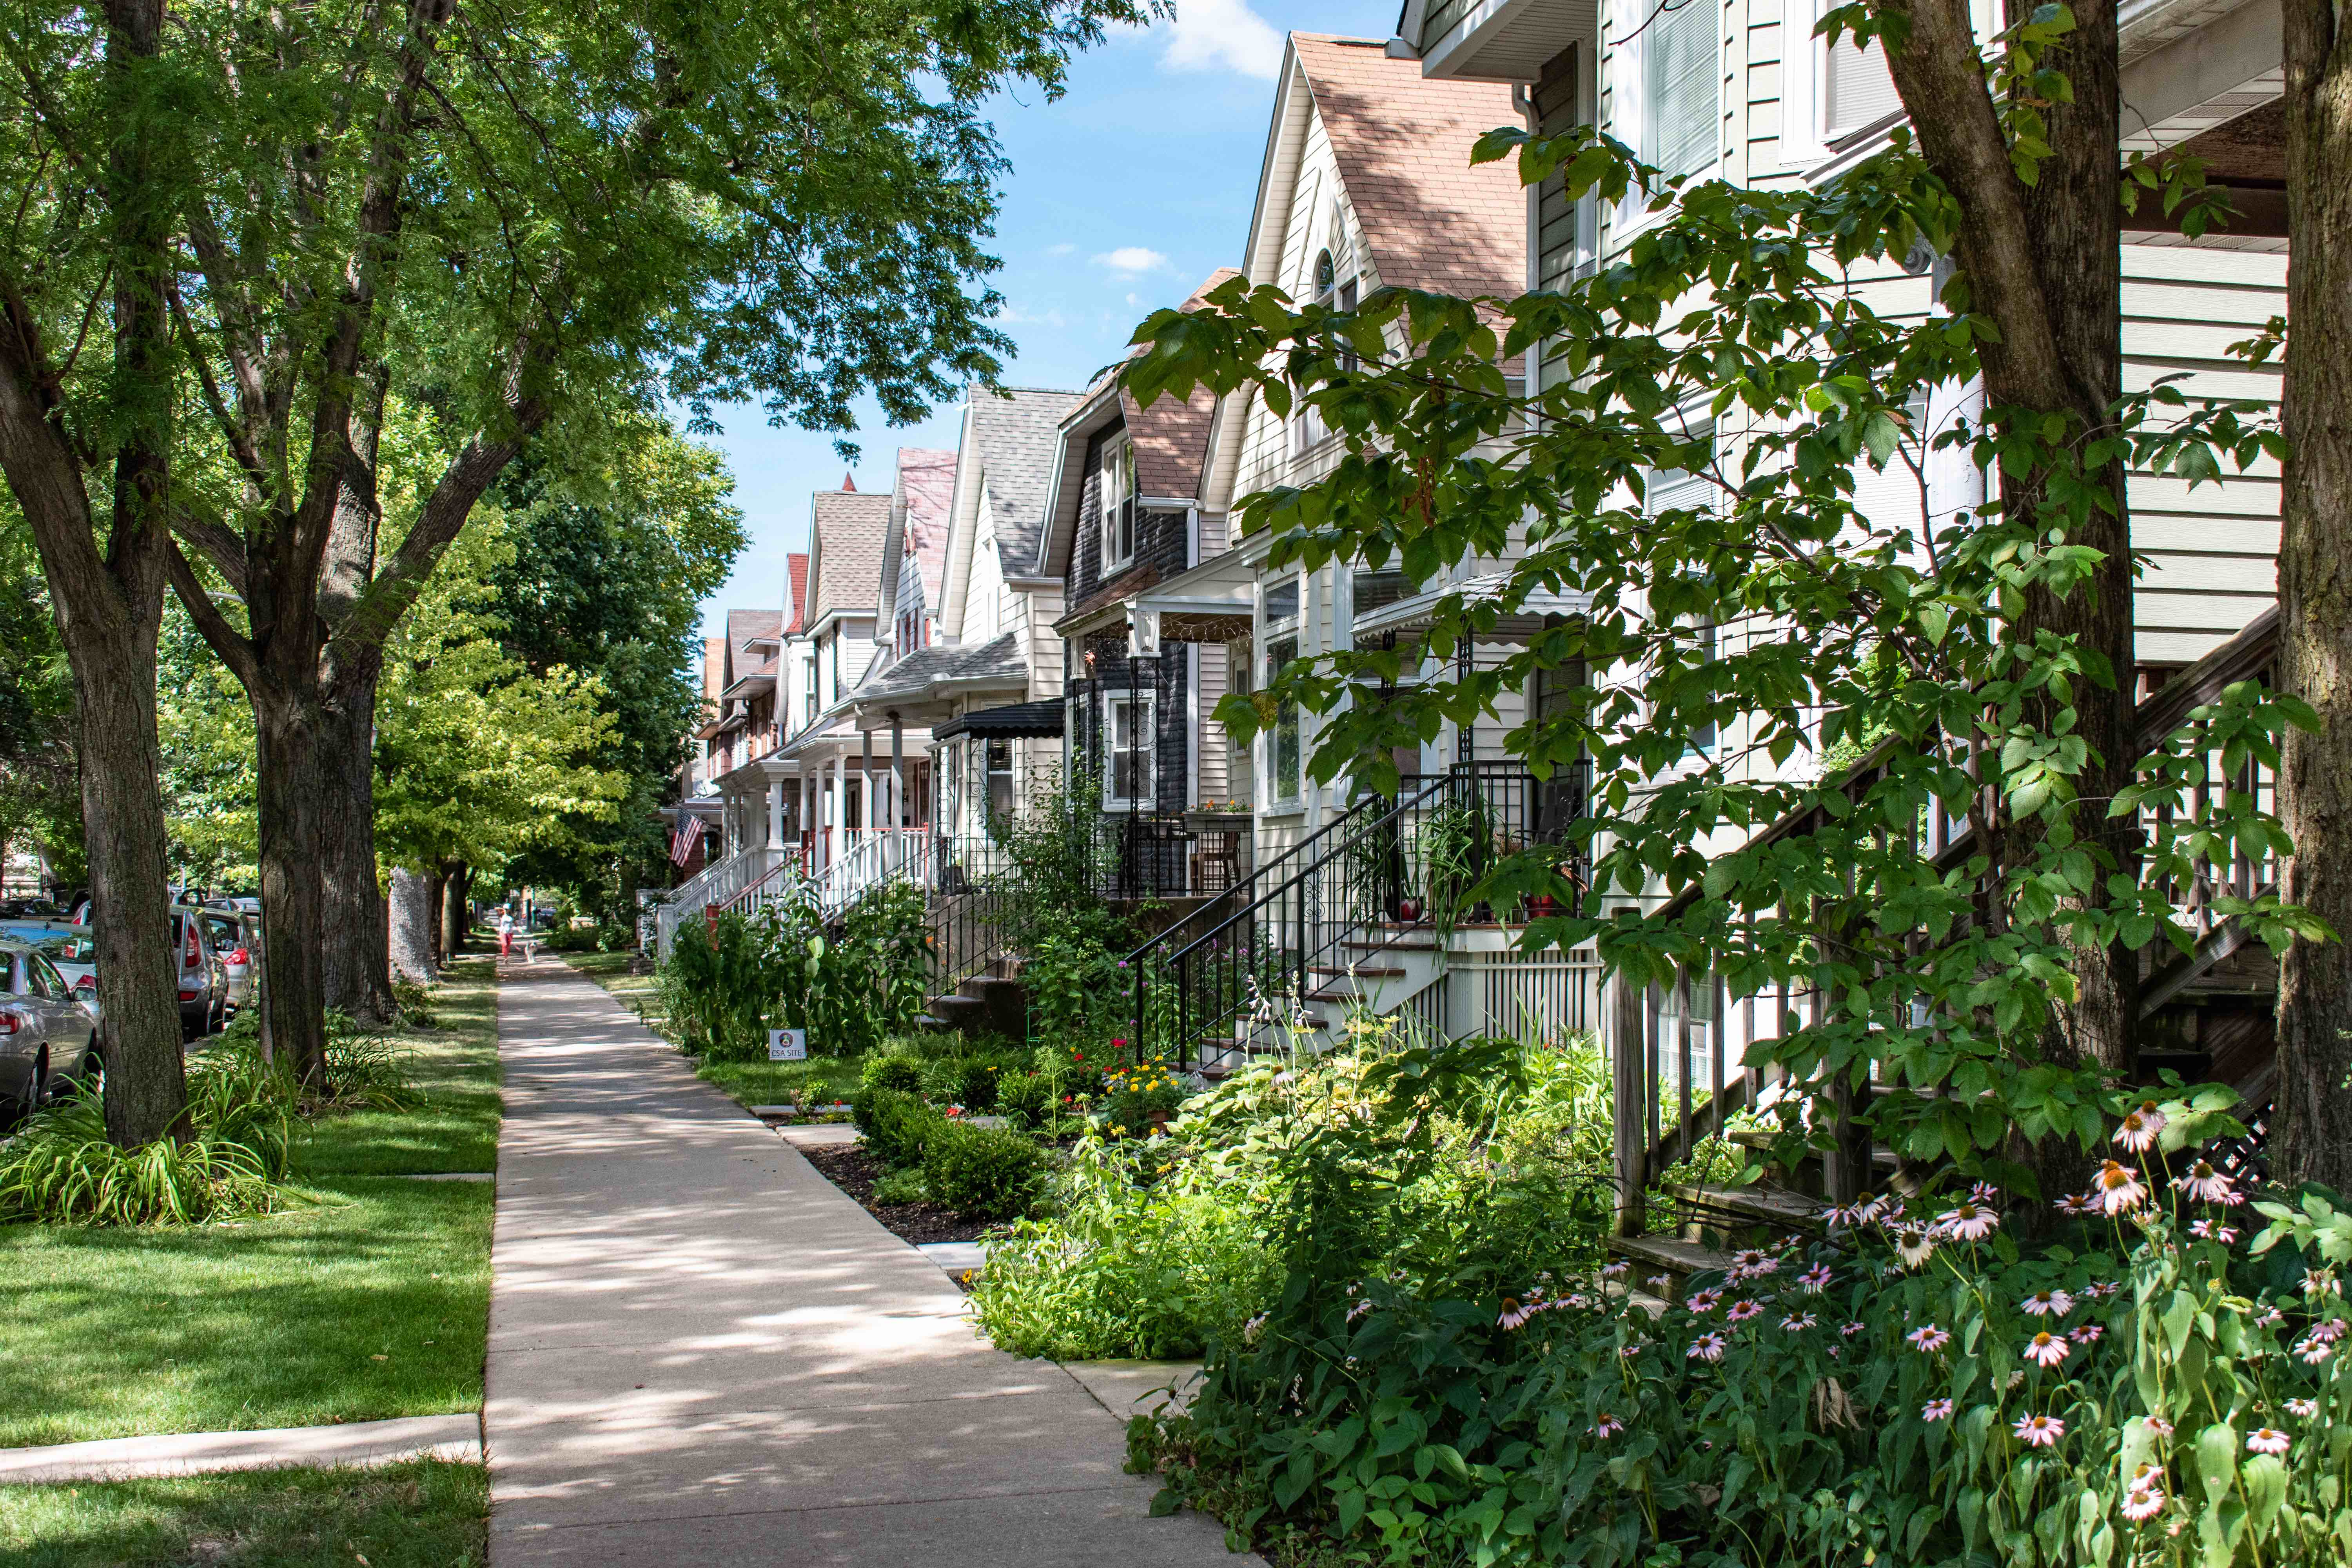 Looking for a Bed and Breakfast in Logan Square? Try These